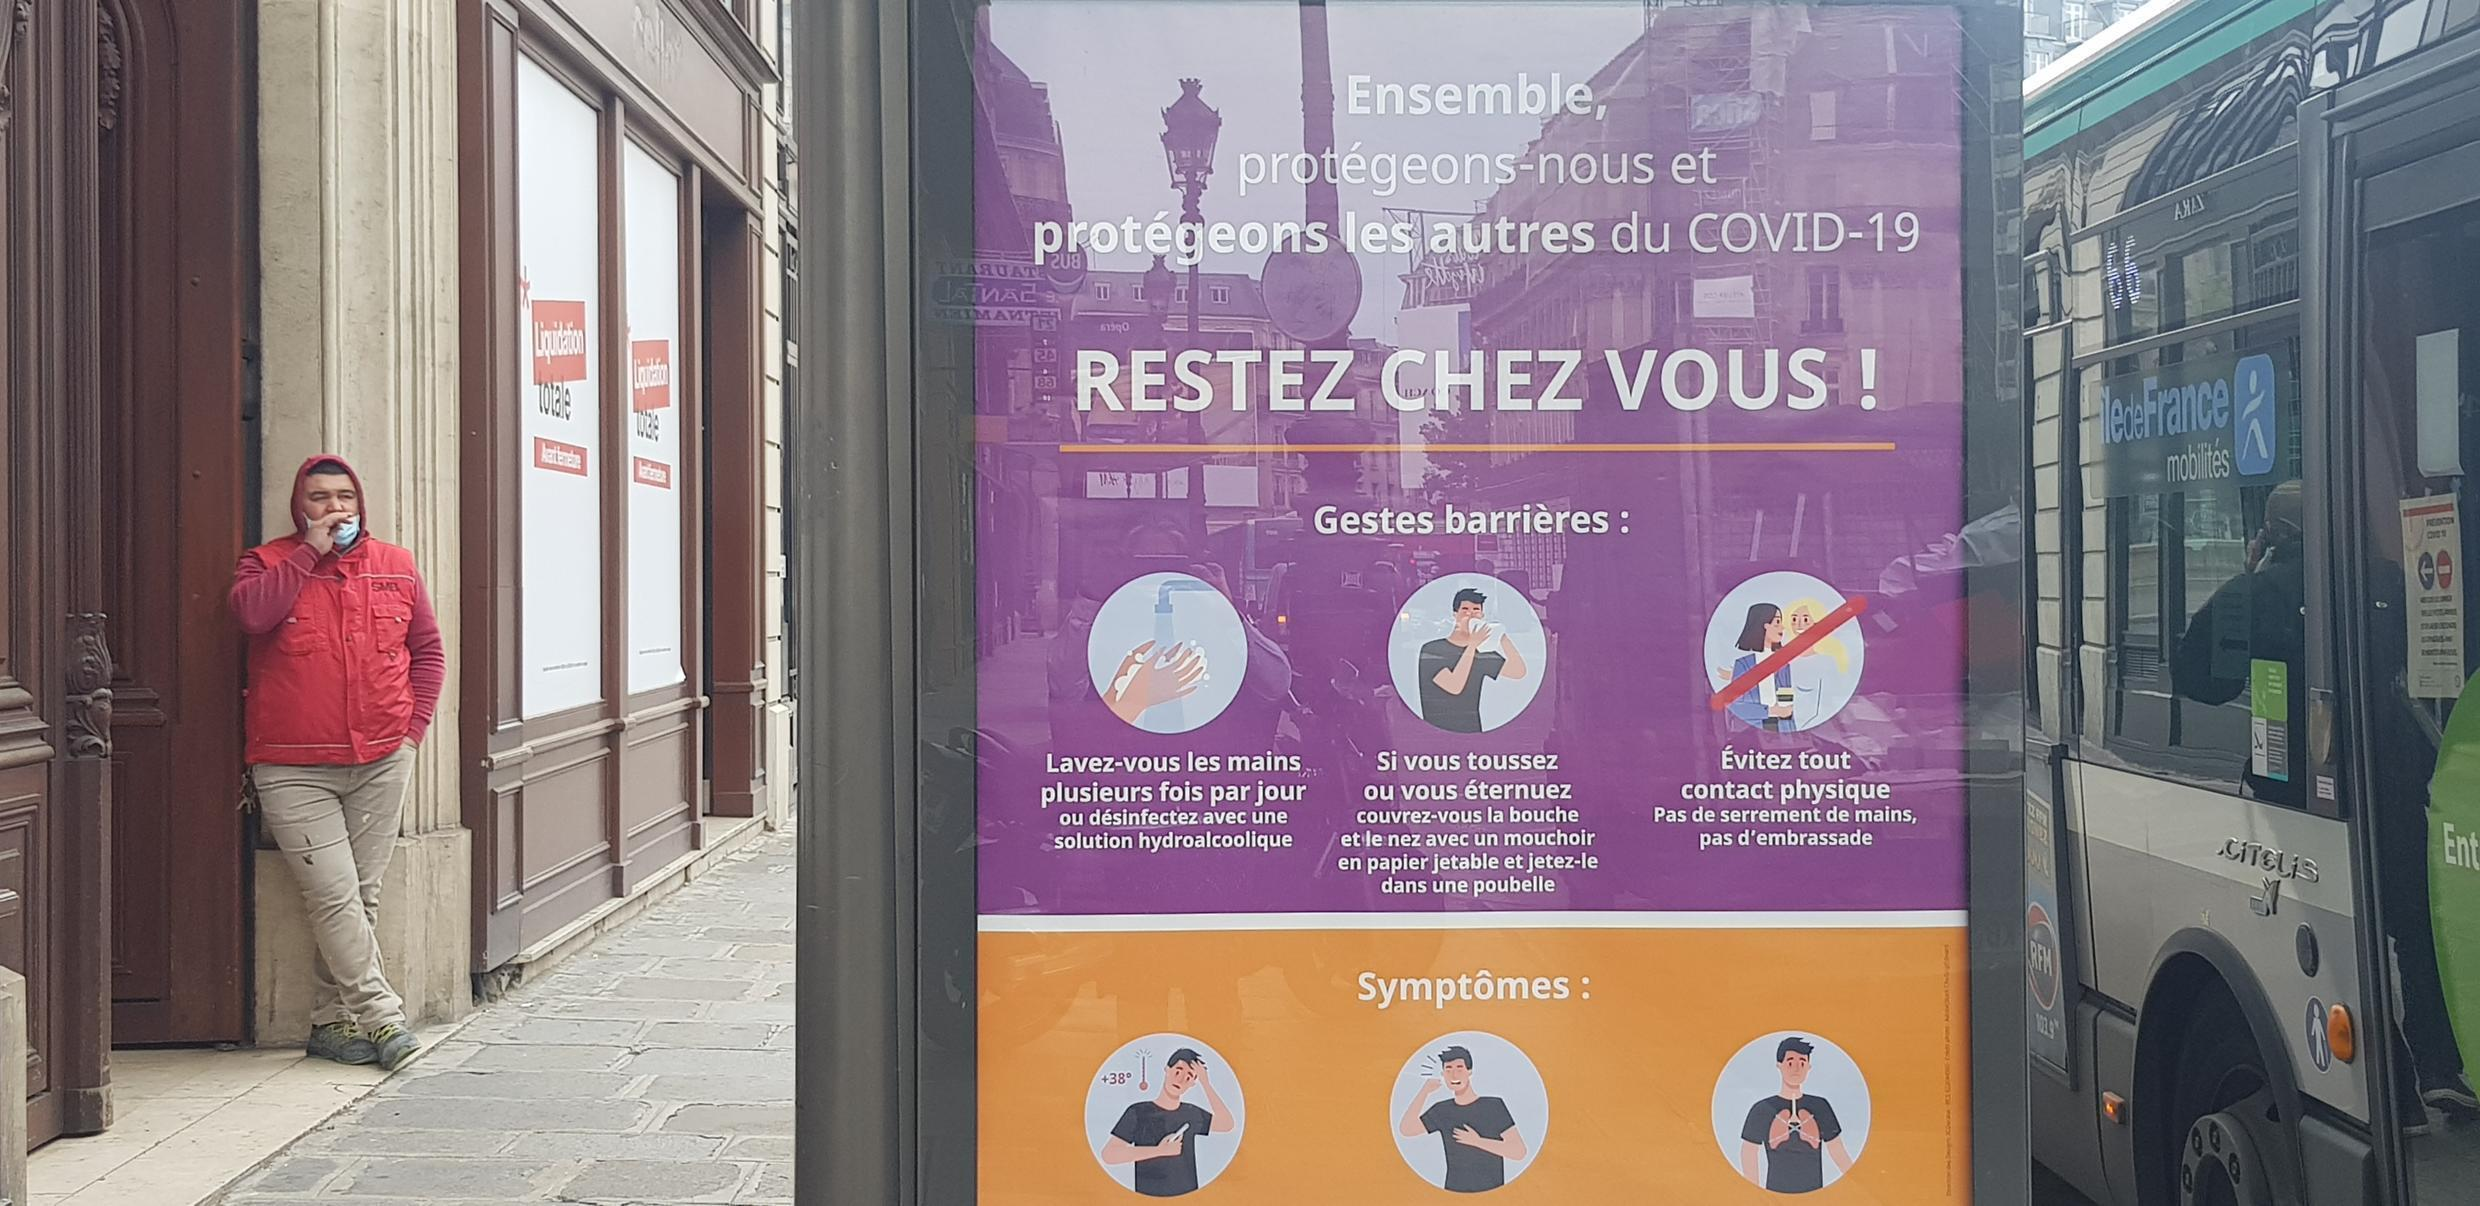 Paris bus stop messaging what is the new norm in the Covid era despite easing out of lockdown.